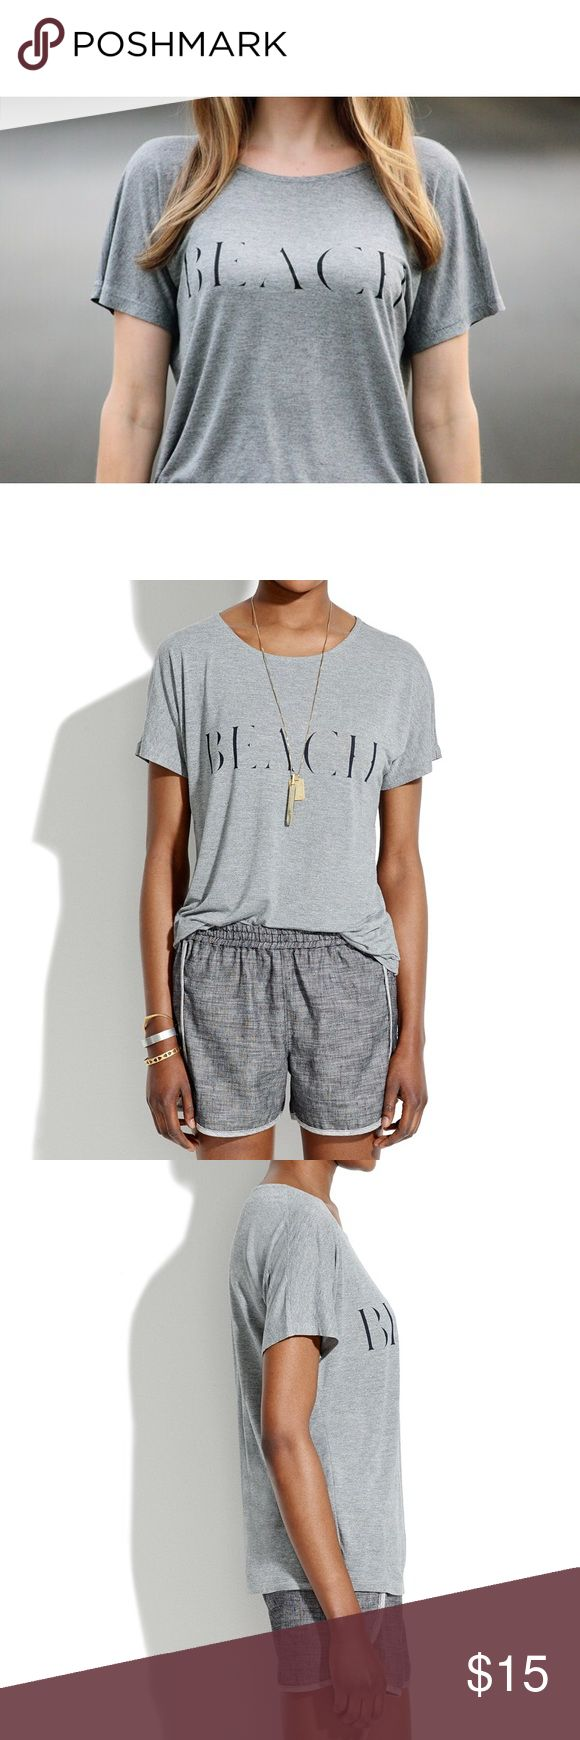 Madewell Beach Grey Heathered Tee Soft and draped graphic tee. Size Large. True to size. Good used condition, just needs to be steamed/ironed. No trades, no PayPal. Price is firm. Madewell Tops Tees - Short Sleeve